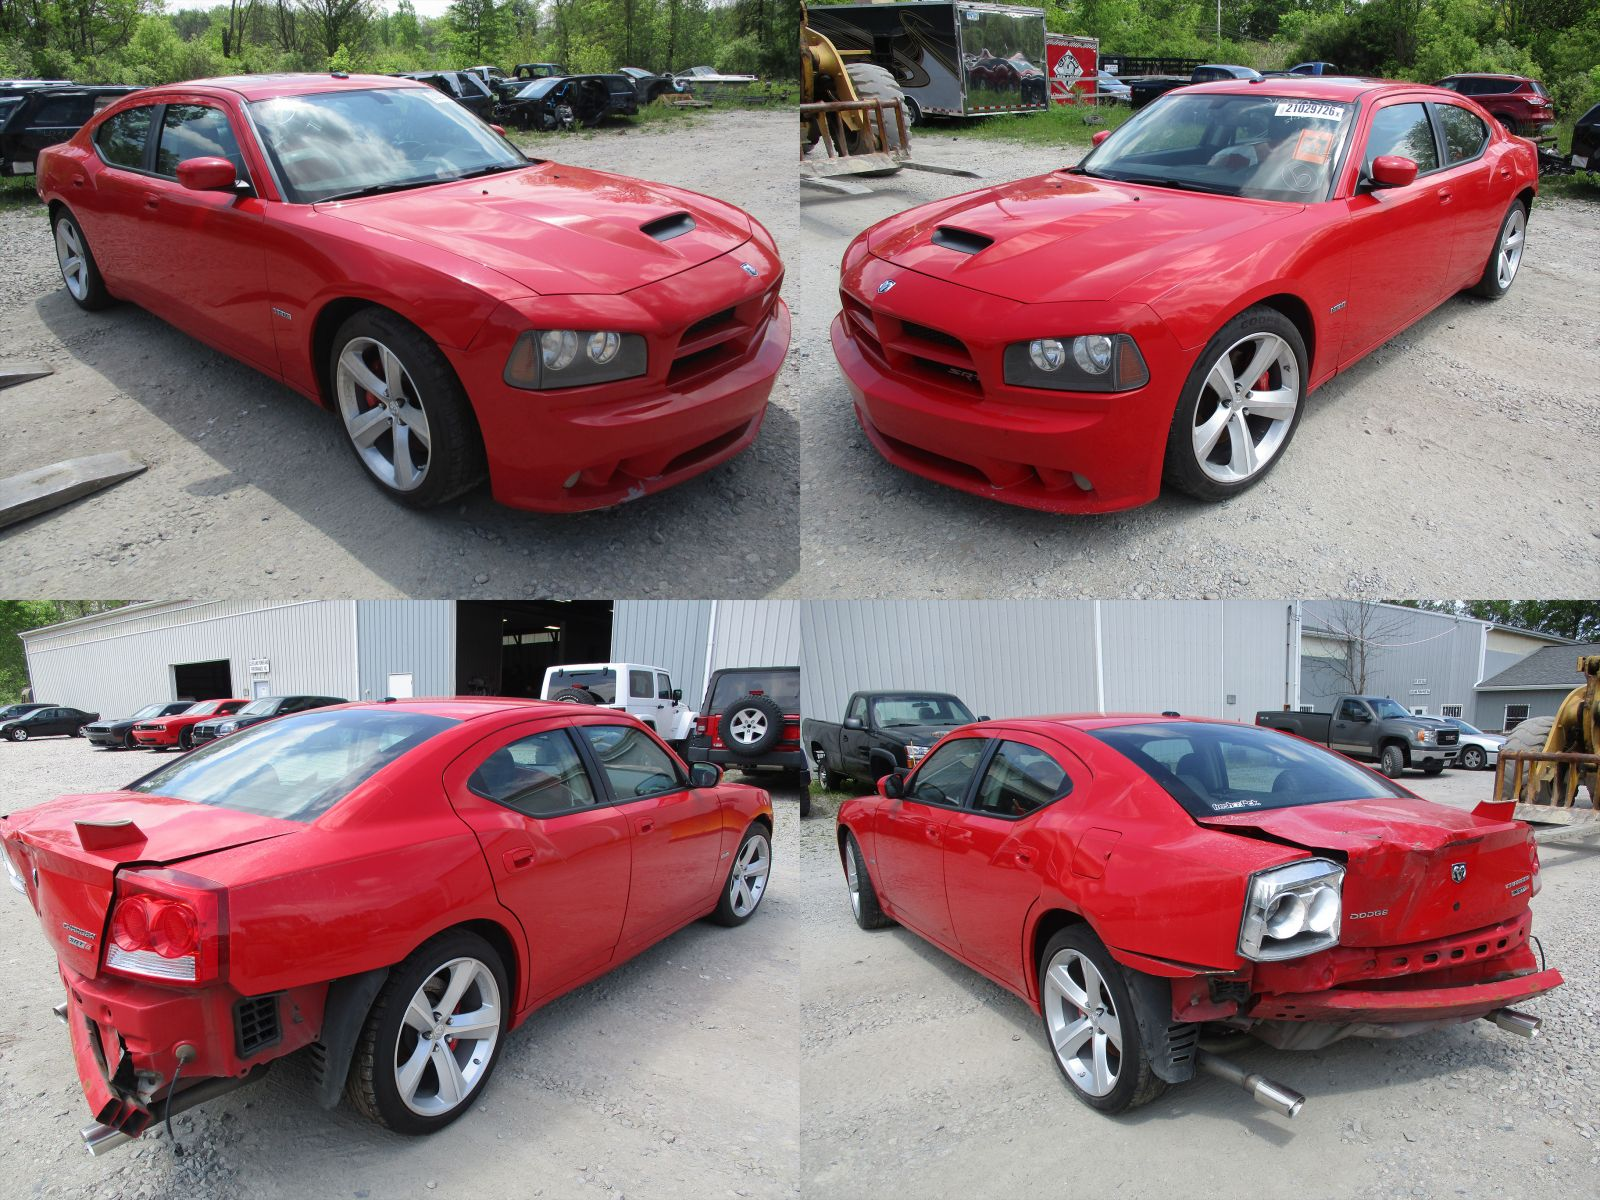 Cleveland Power And Performance >> 2009 Red Dodge Charger SRT-8 - Cleveland Power & Performance